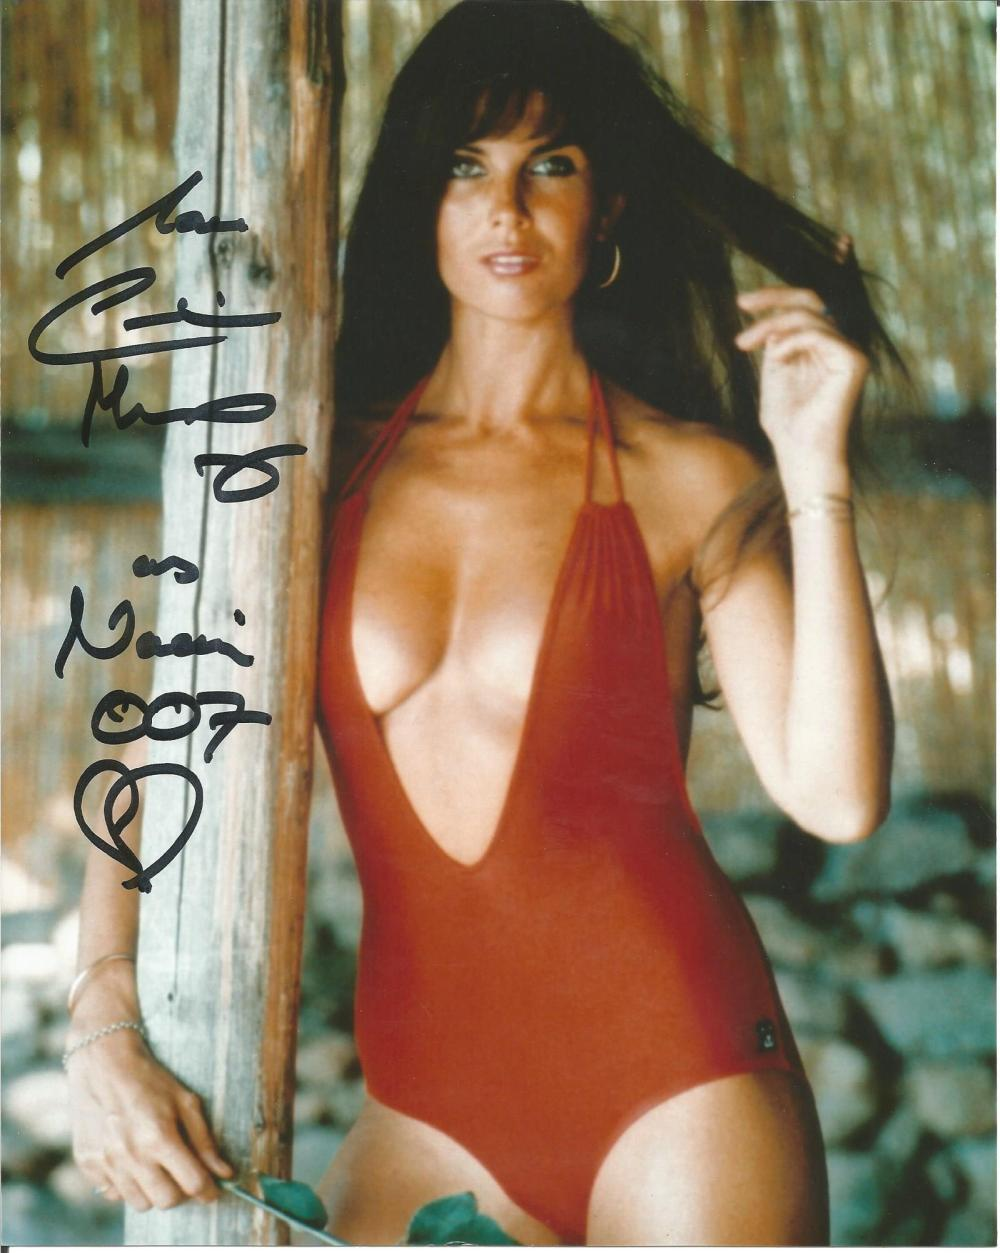 Caroline Munro super sexy hand signed 10x8 photo. This beautiful hand-signed photo depicts